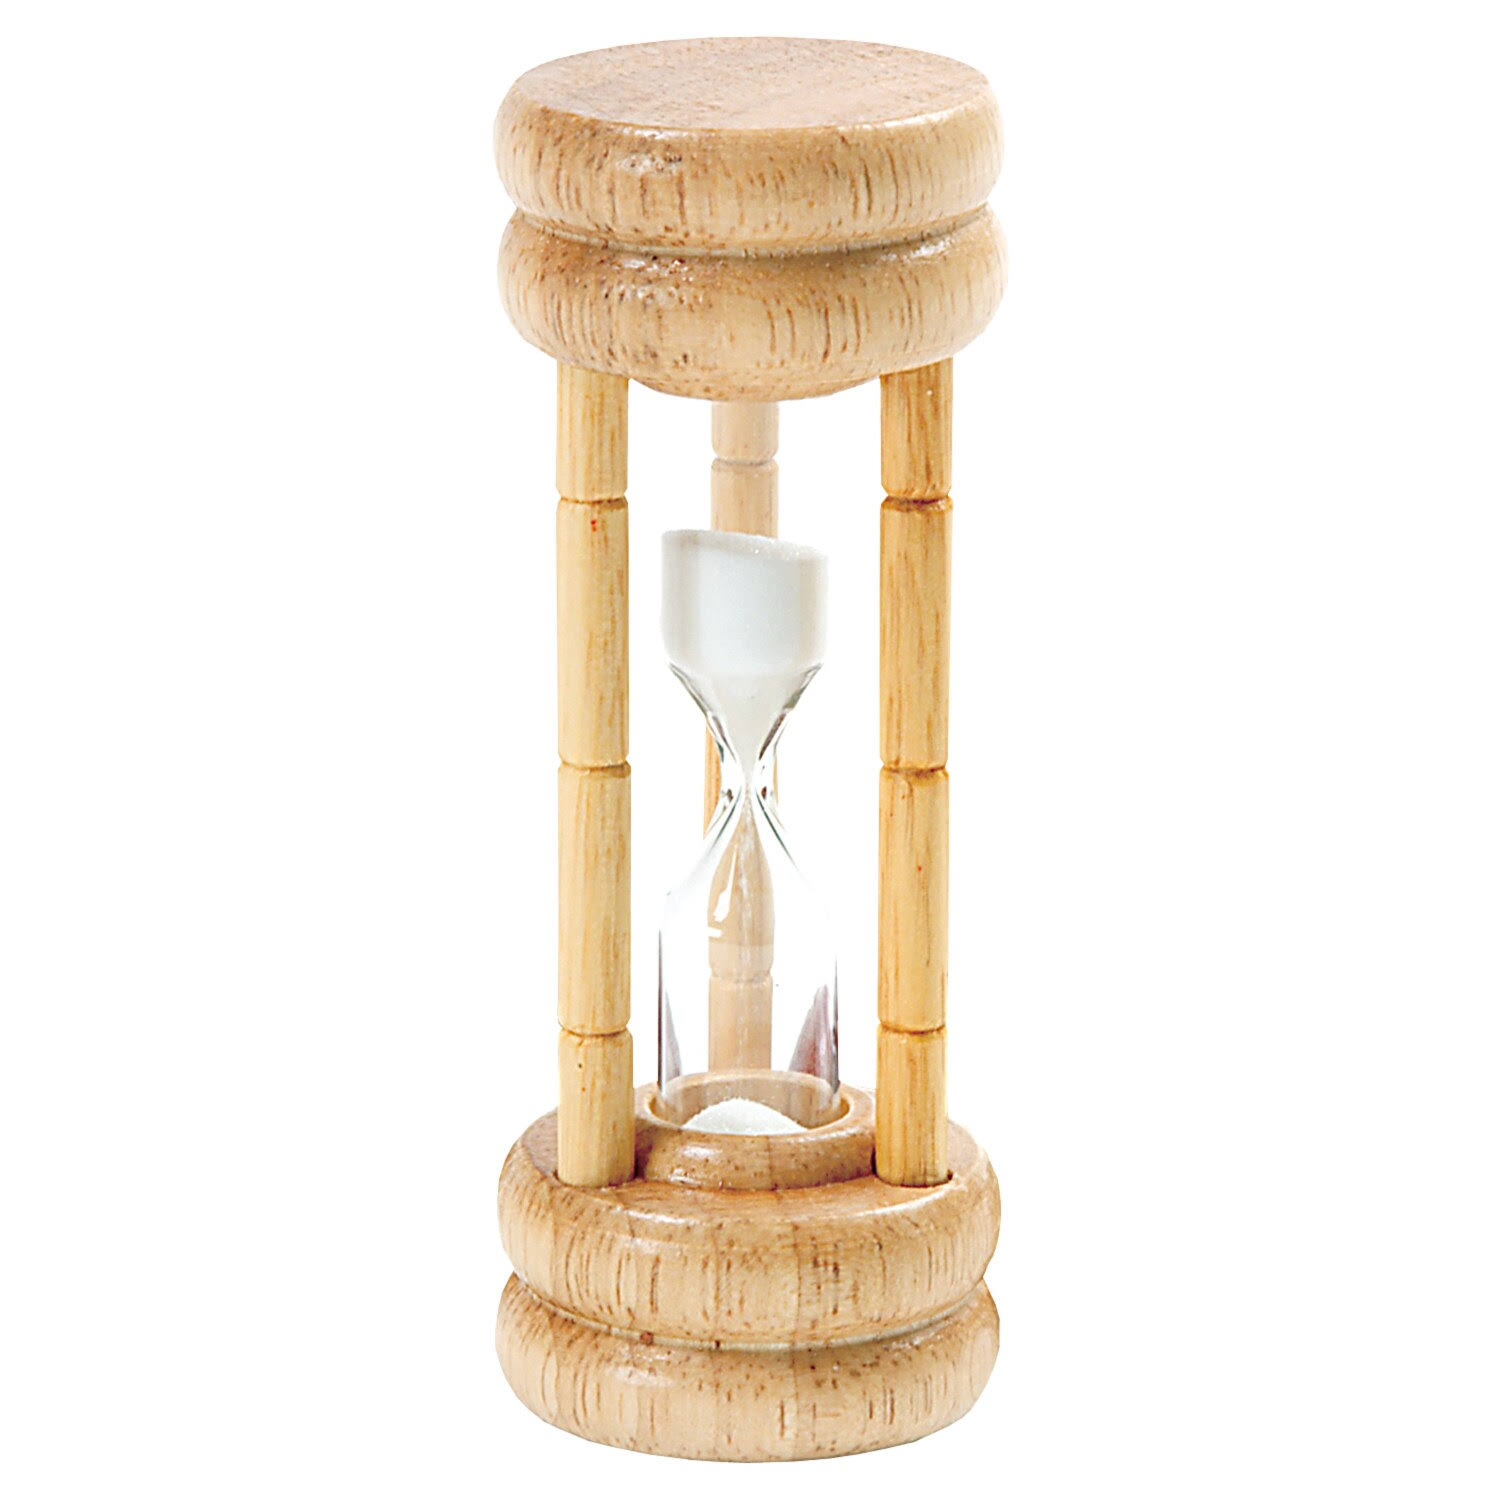 Norpro 3 Minute Hourglass Egg Game Timer Wood Base with Glass